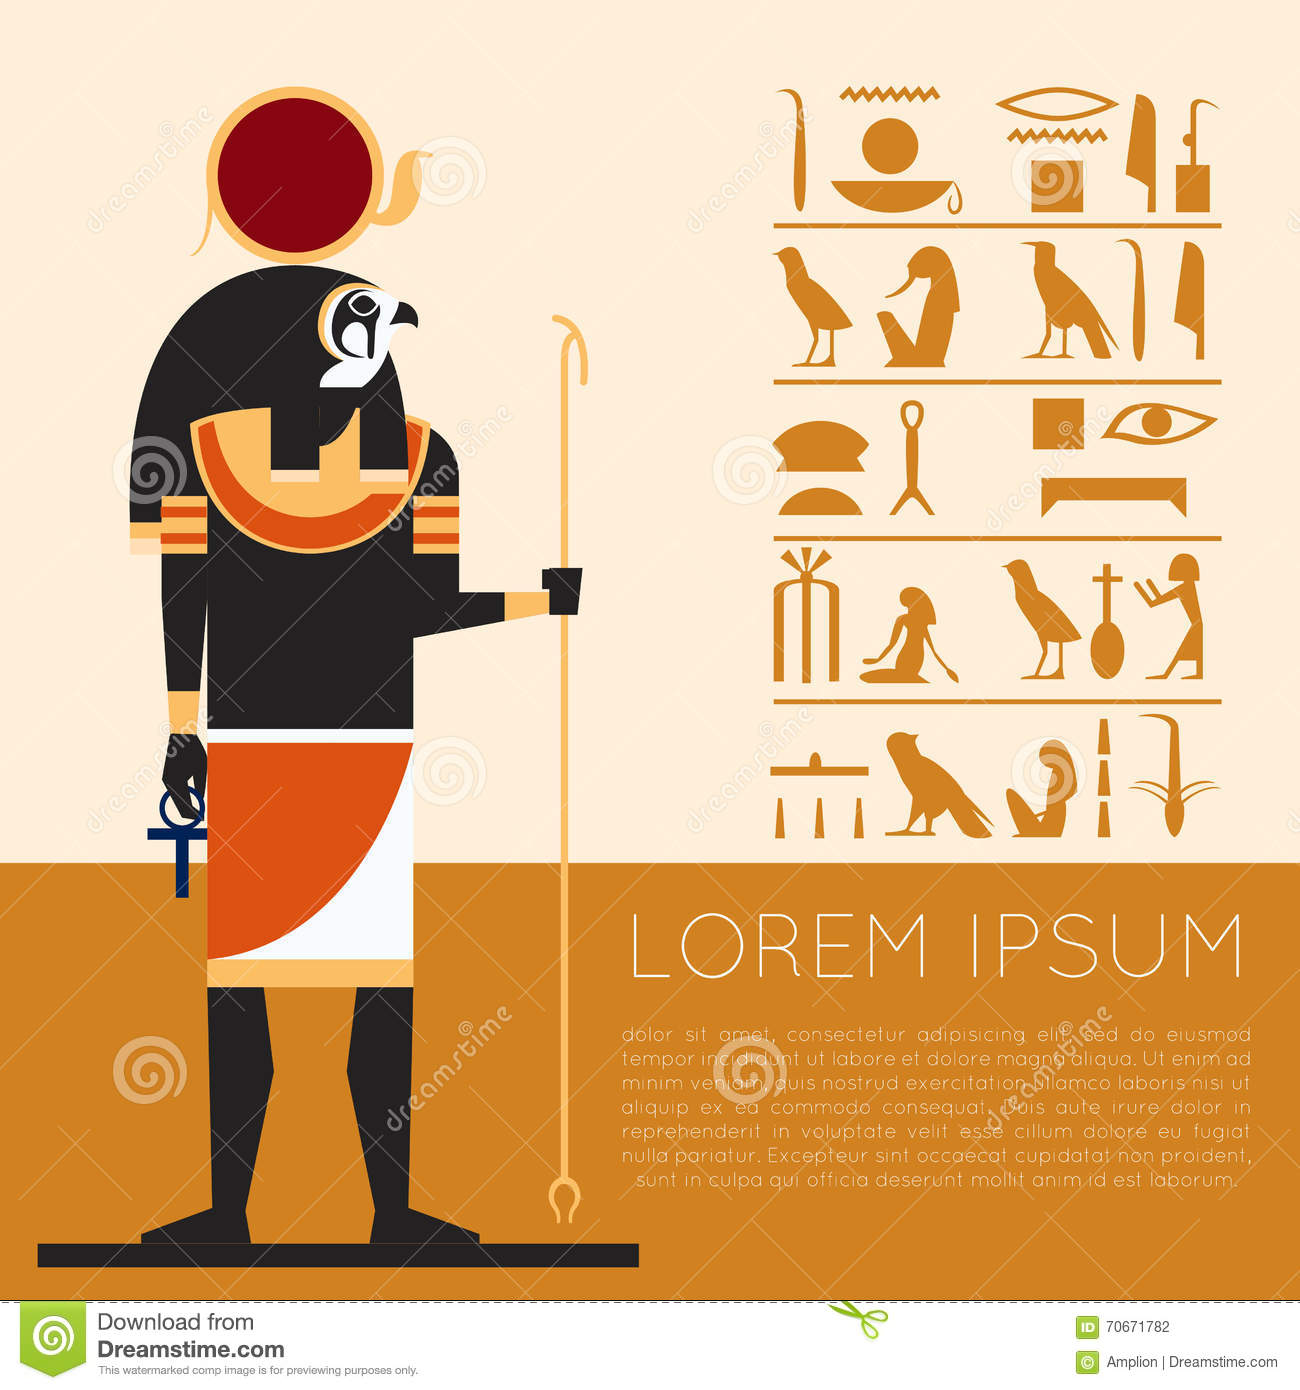 egypet history Online shopping for egypt - ancient civilizations from a great selection at books store.